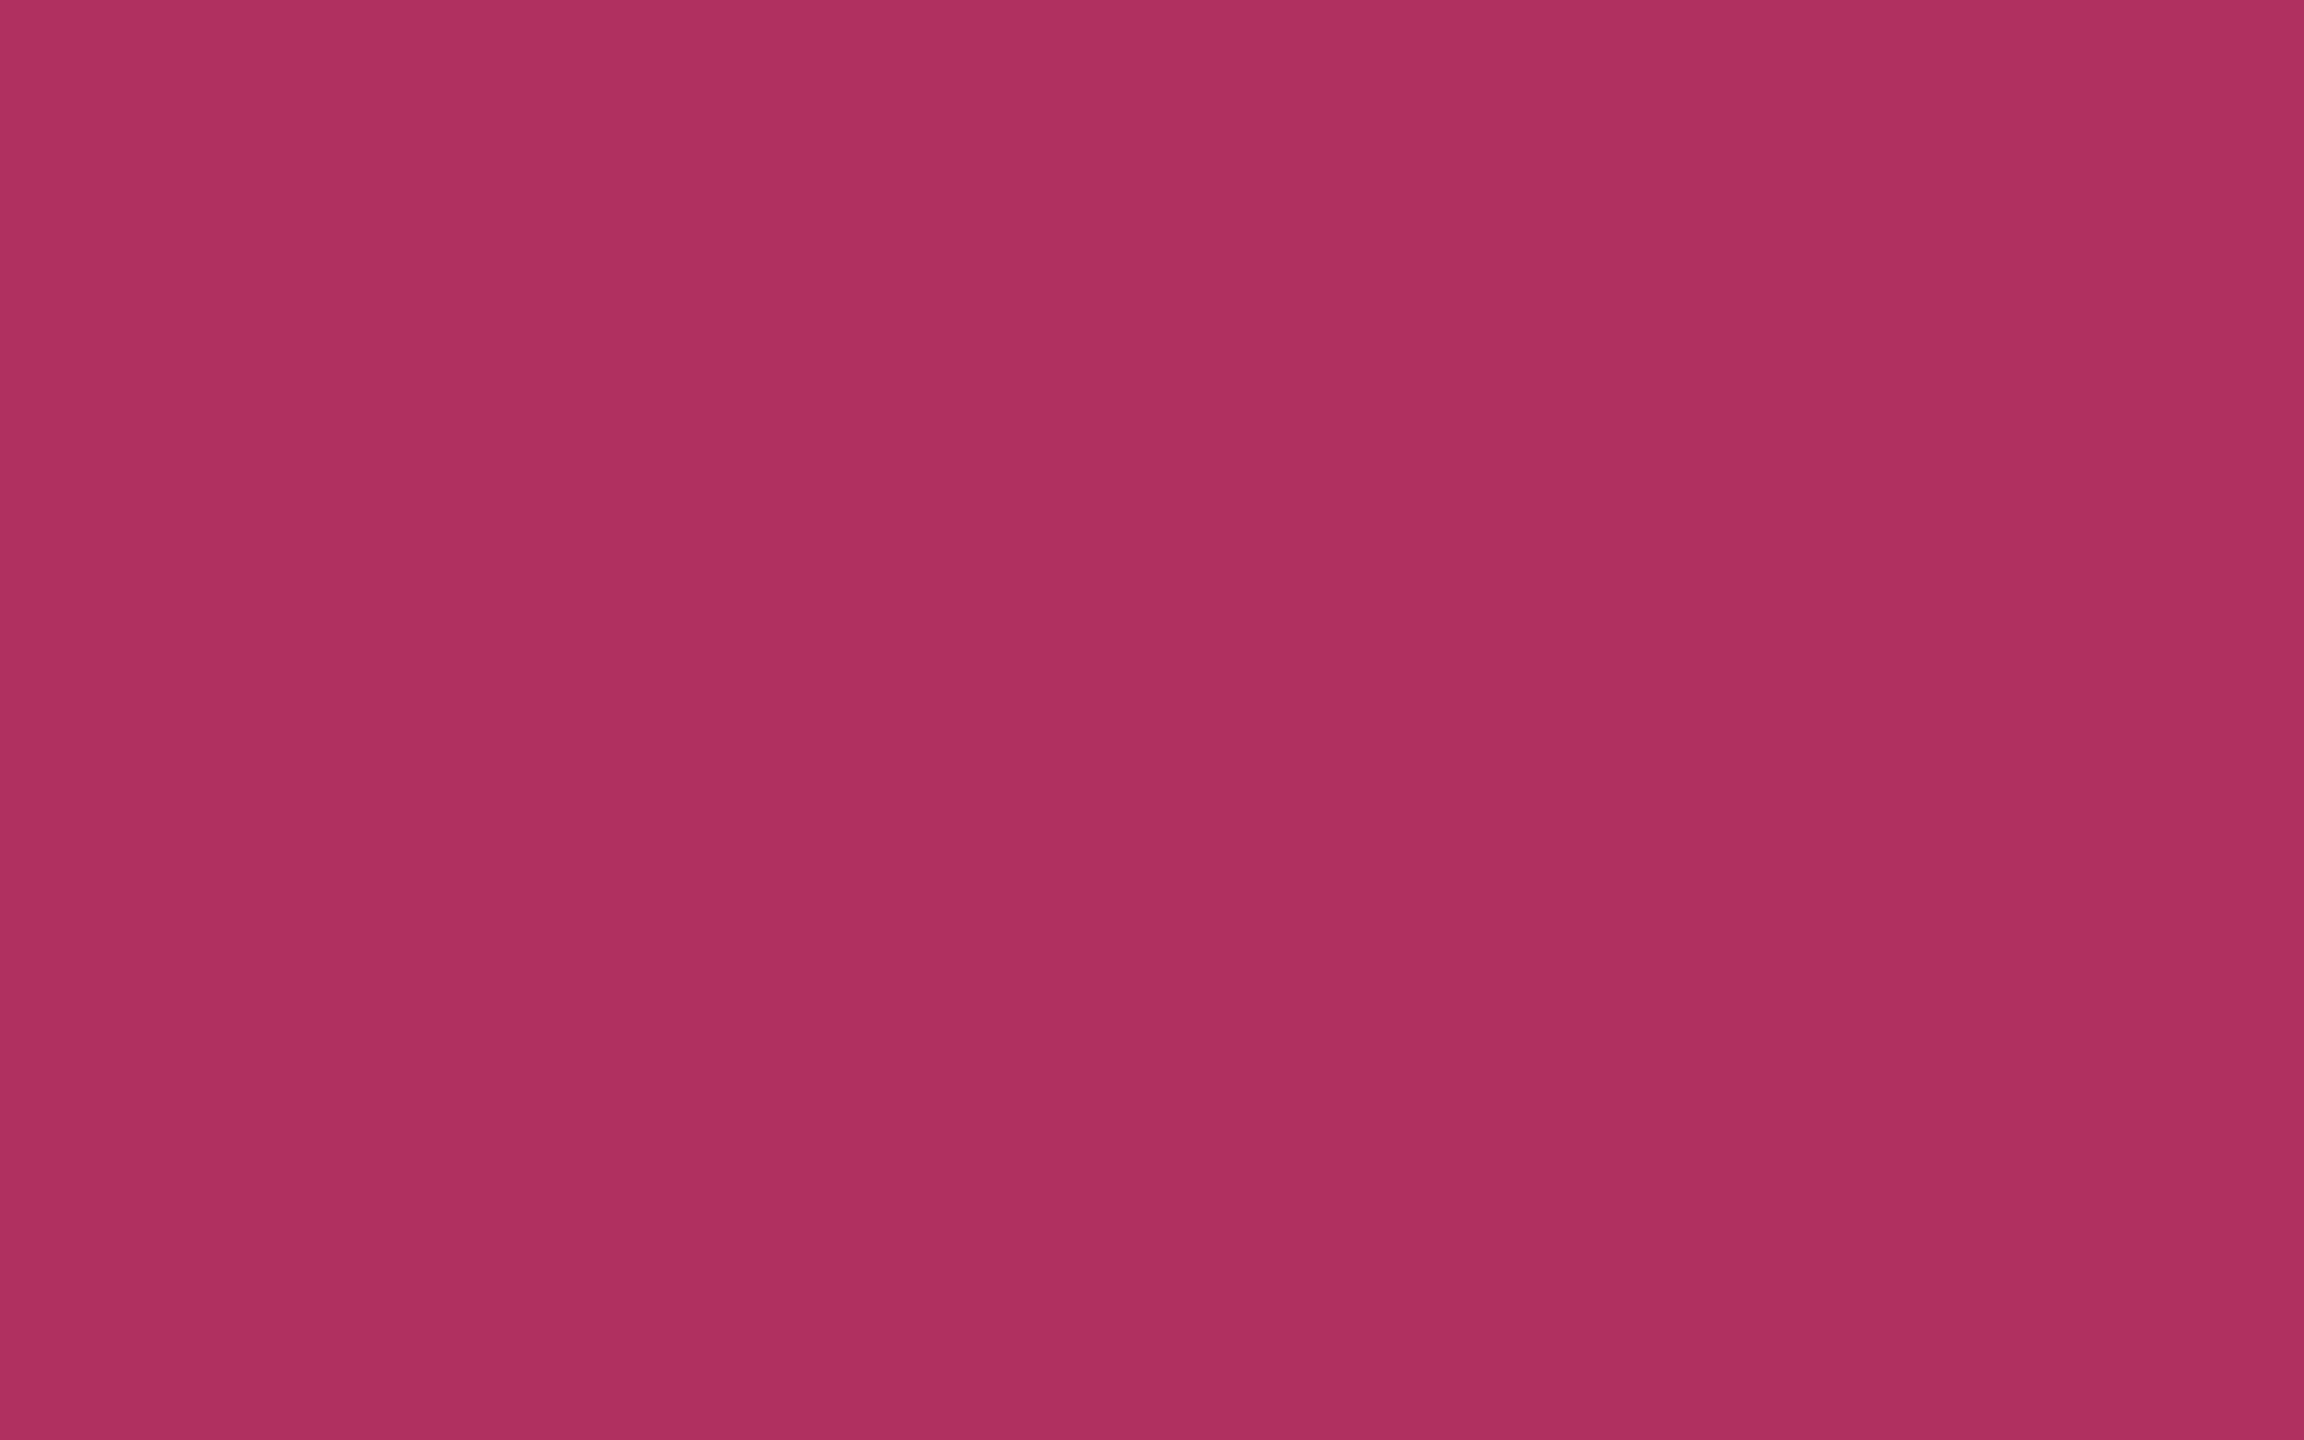 2304x1440 Rich Maroon Solid Color Background